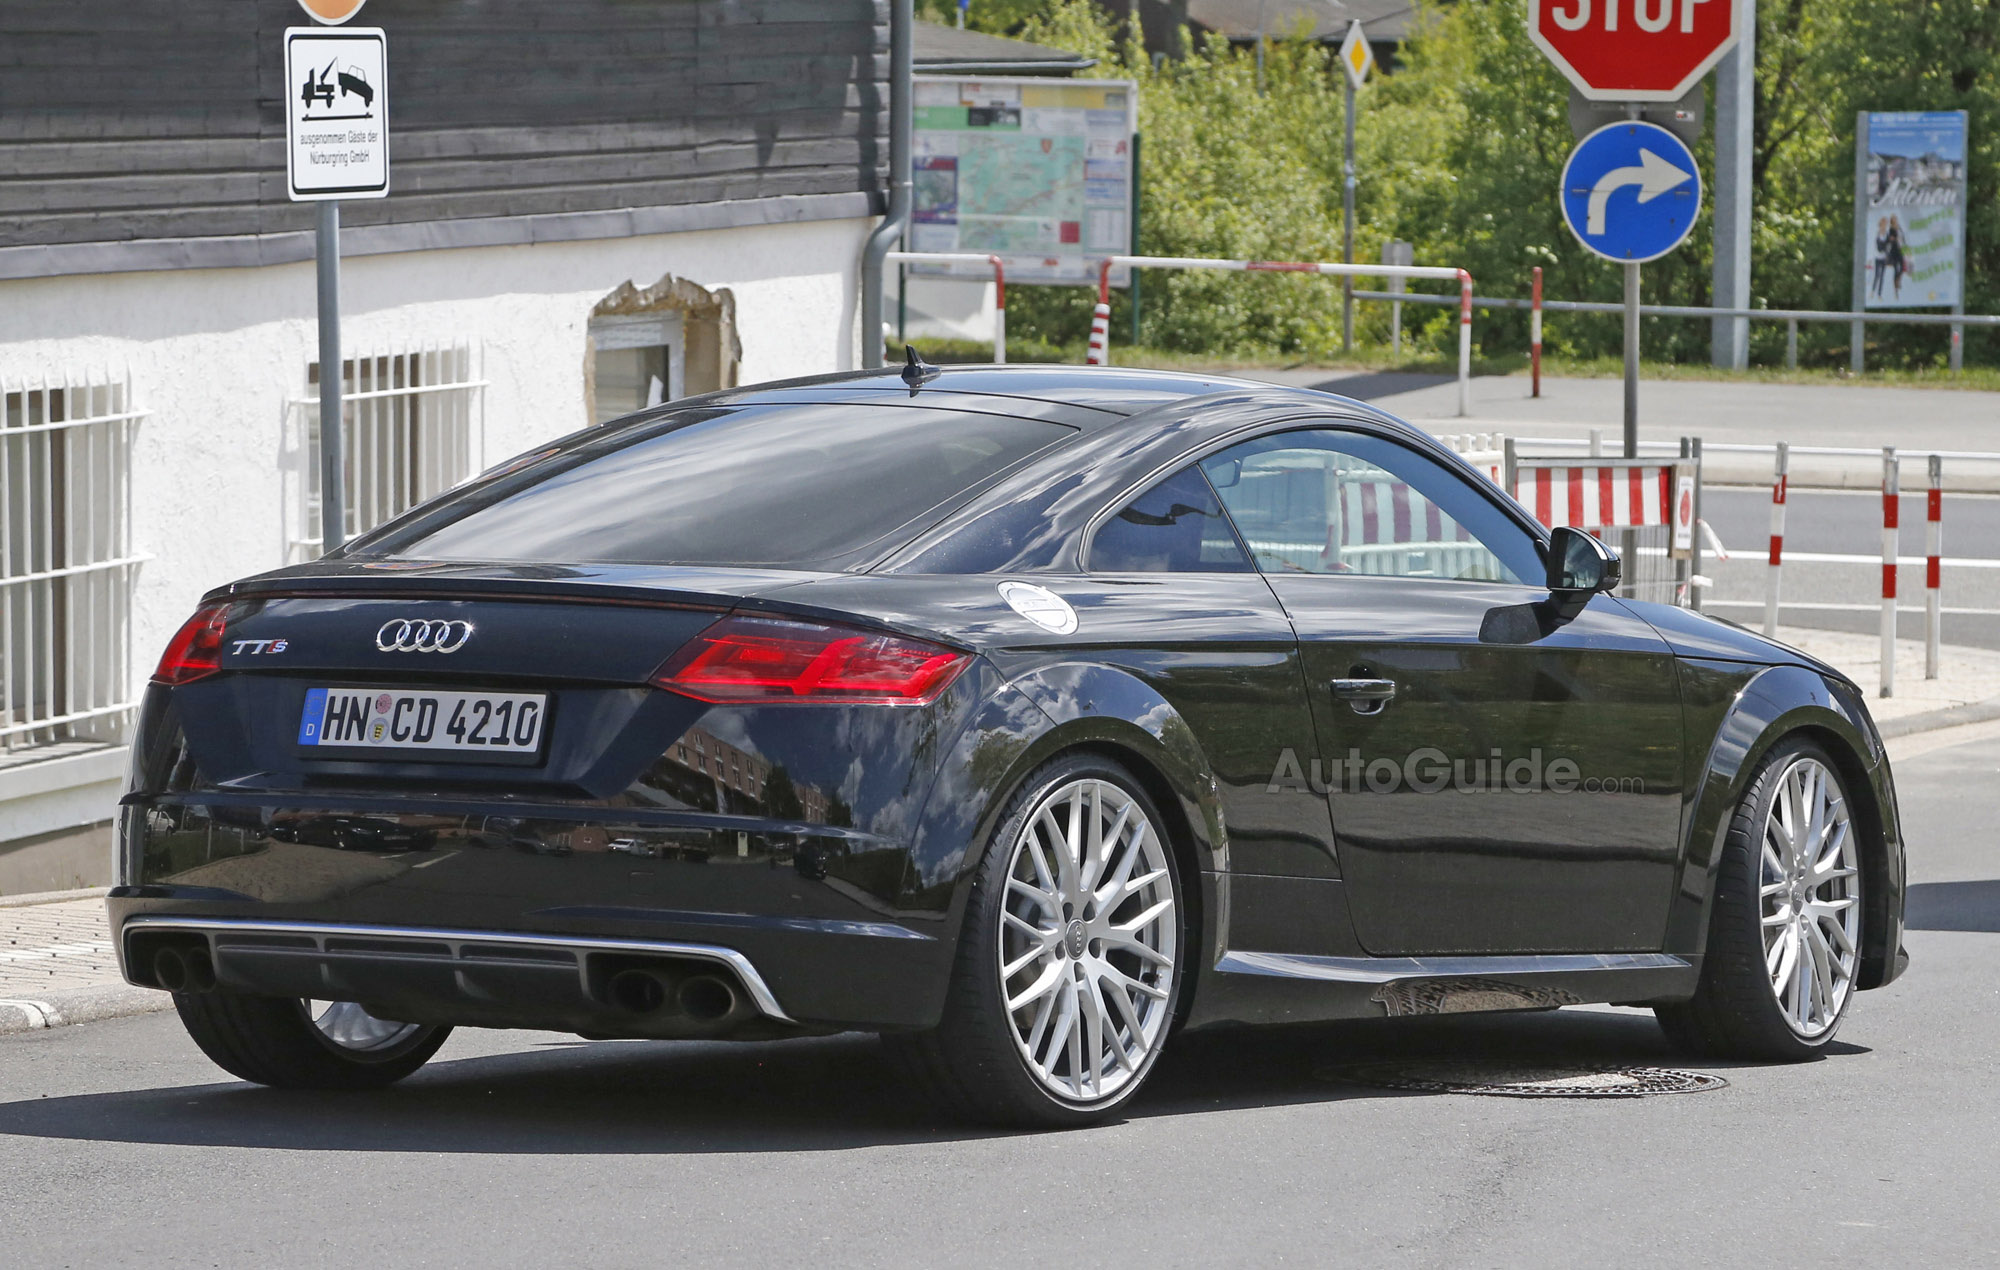 Audi TT RS Prototype Spotted In The Wild AutoGuidecom News - Audi car 04